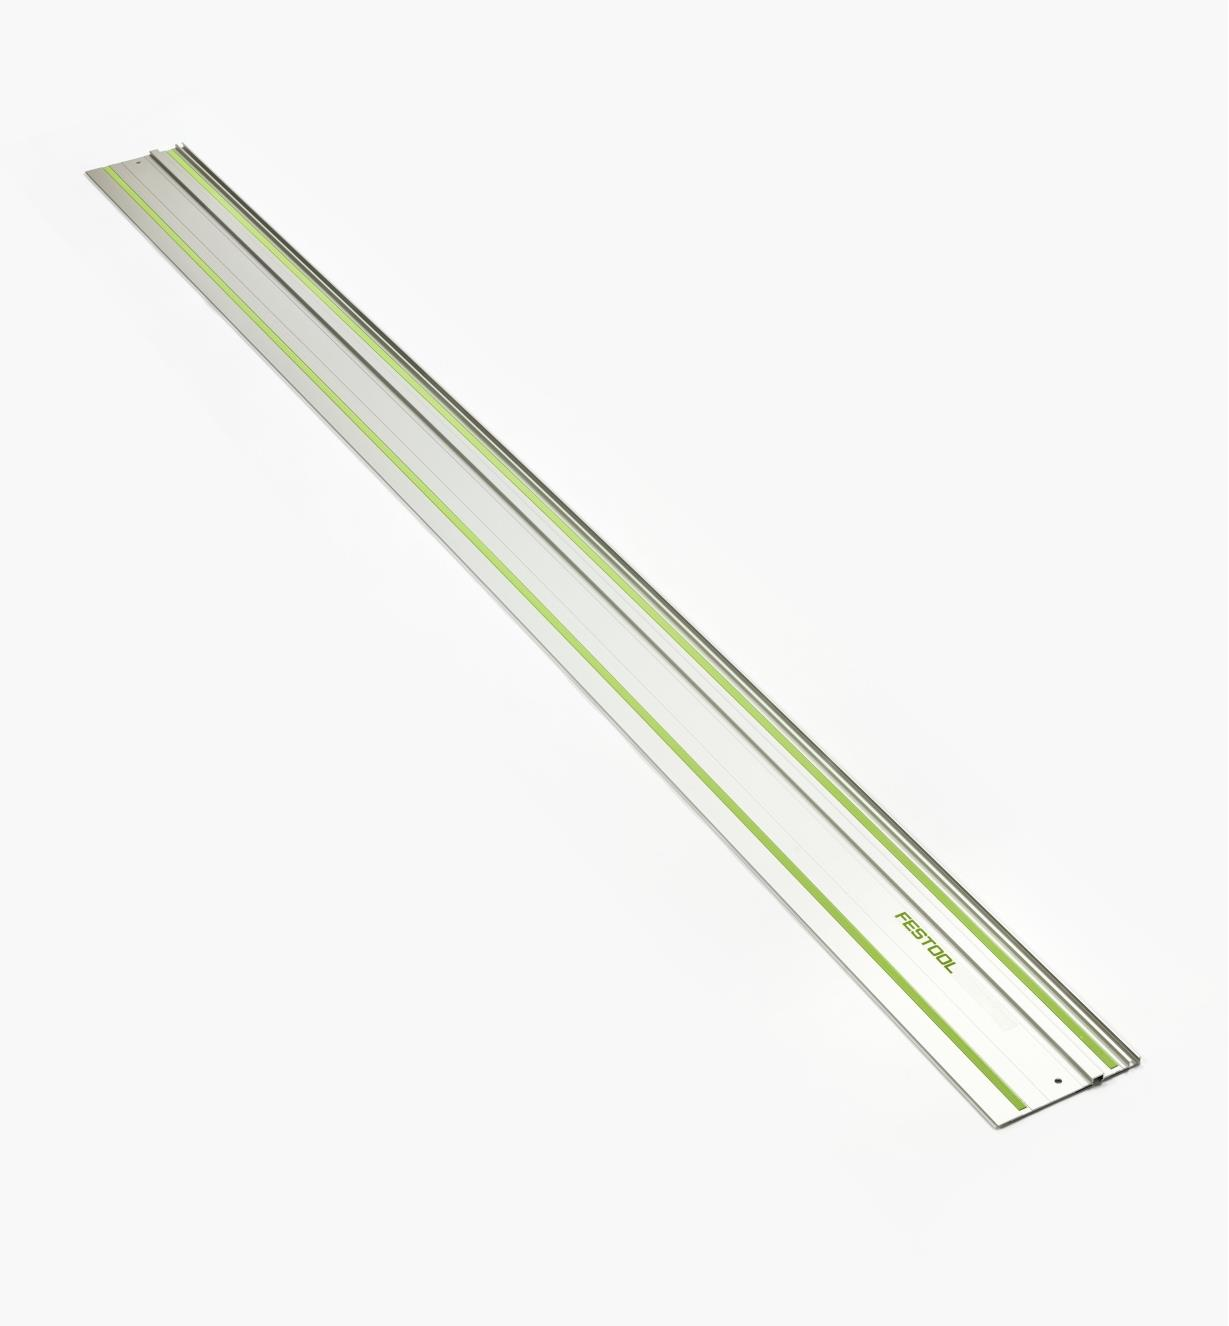 ZA491500 - Guide Rail FS 5000/2